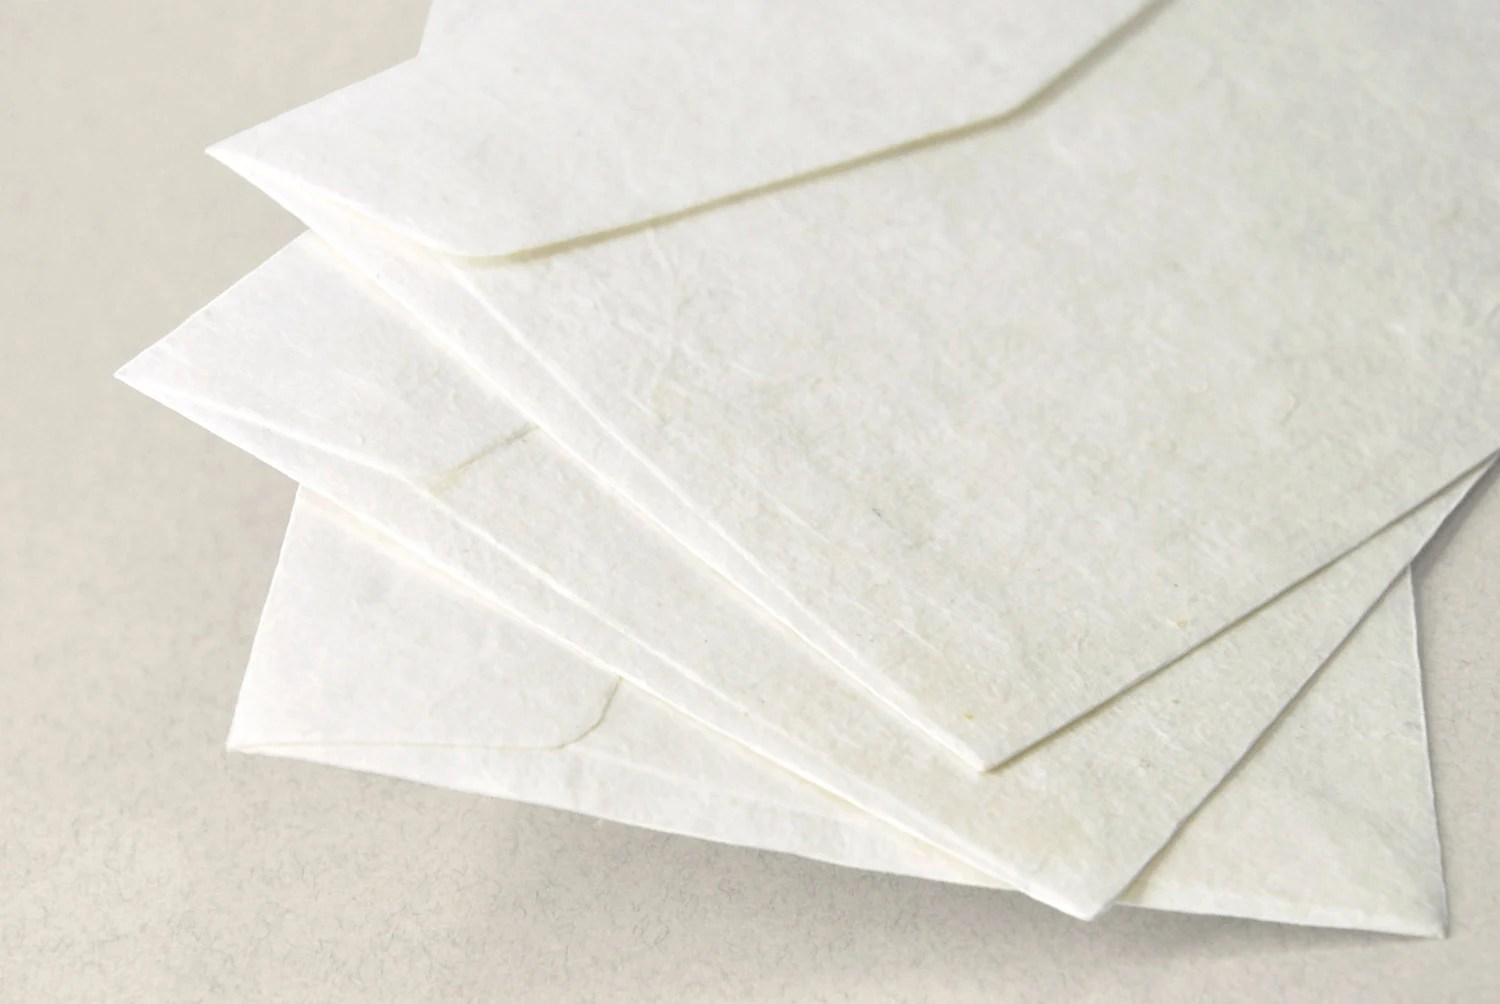 A7 5x7 inch Mulberry Paper Envelopes Off-White Set of 10 Etsy